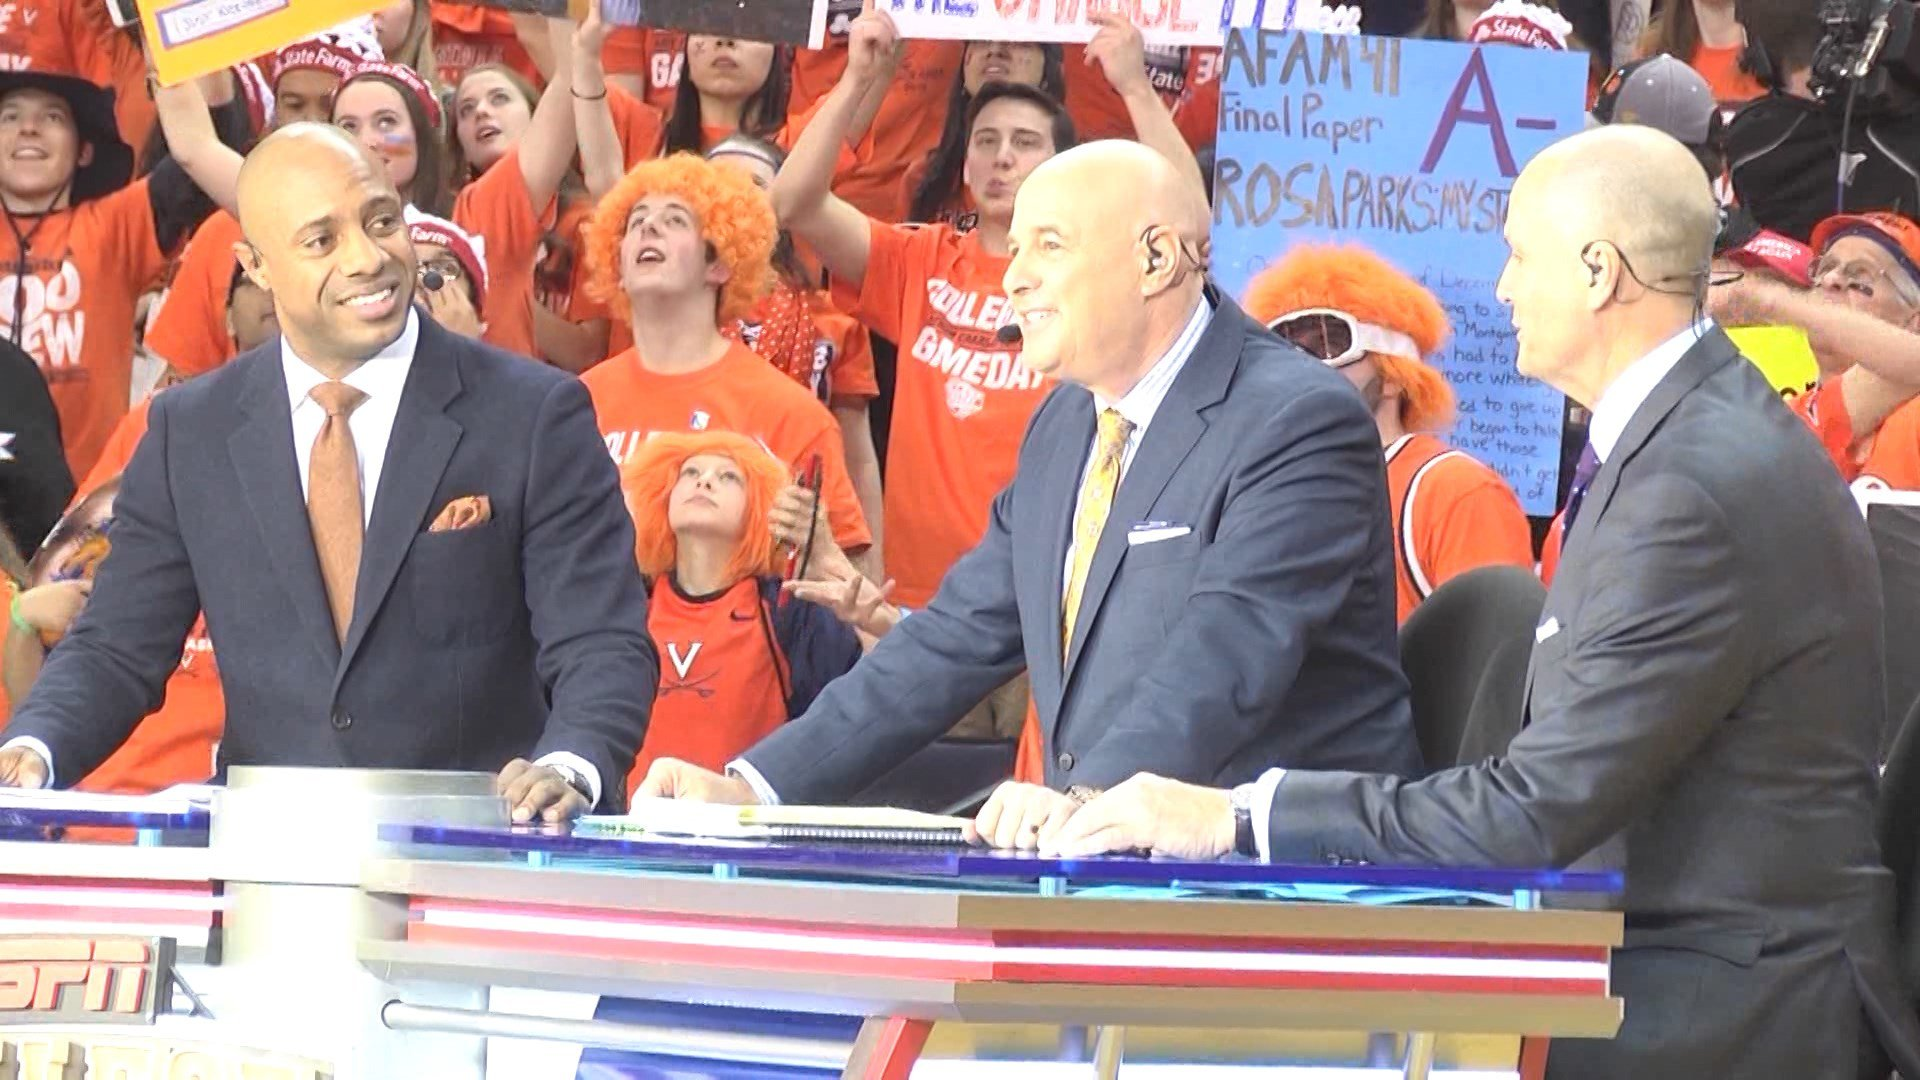 ESPN's College Gameday returns to JPJ on February 10th